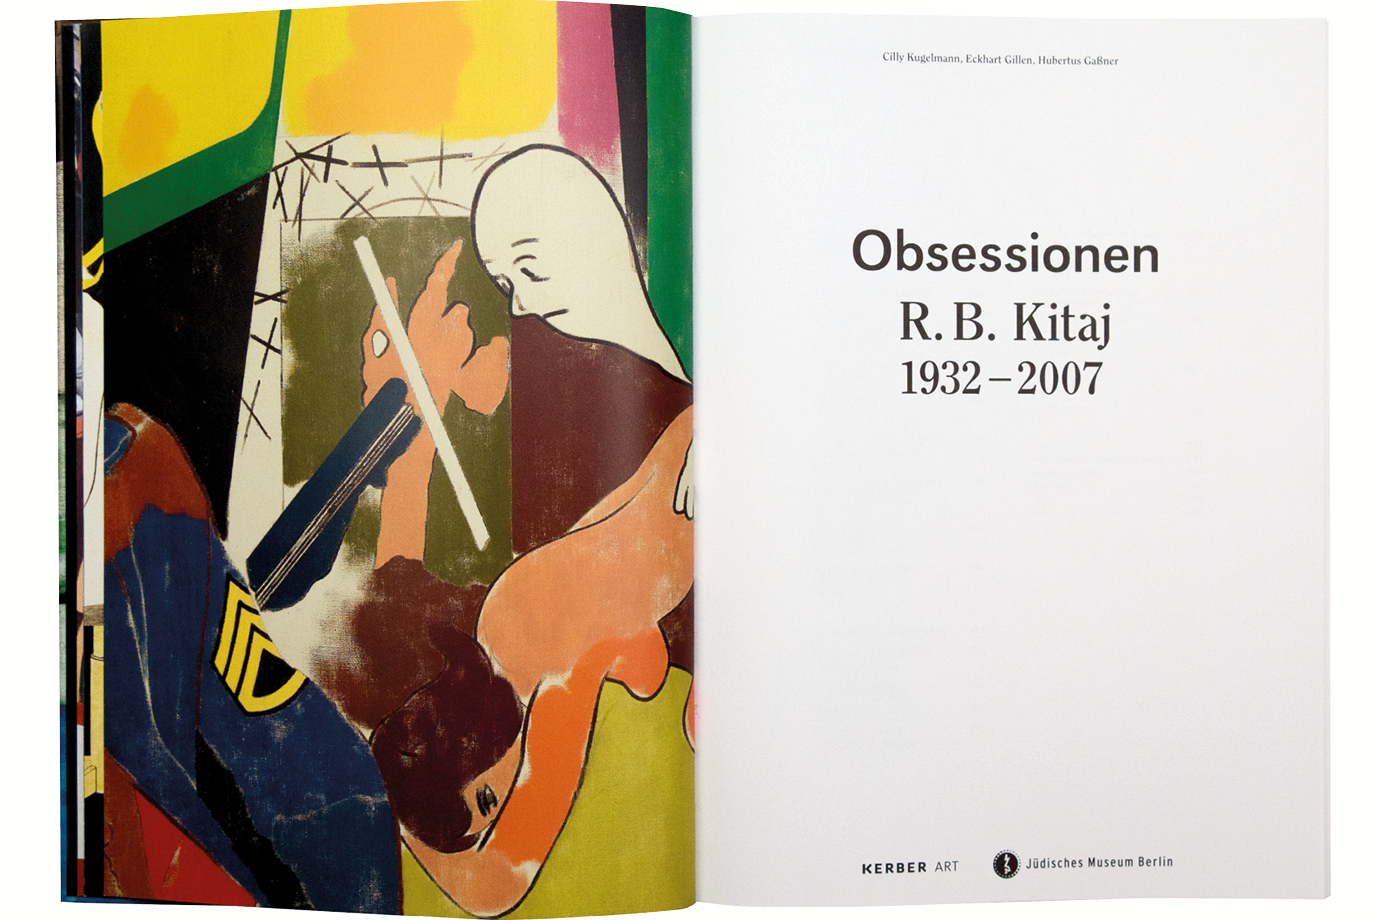 http://e-o-t.de/wordpress/wp-content/uploads/2017/07/eot-2012-Kitaj-Book-6.jpg